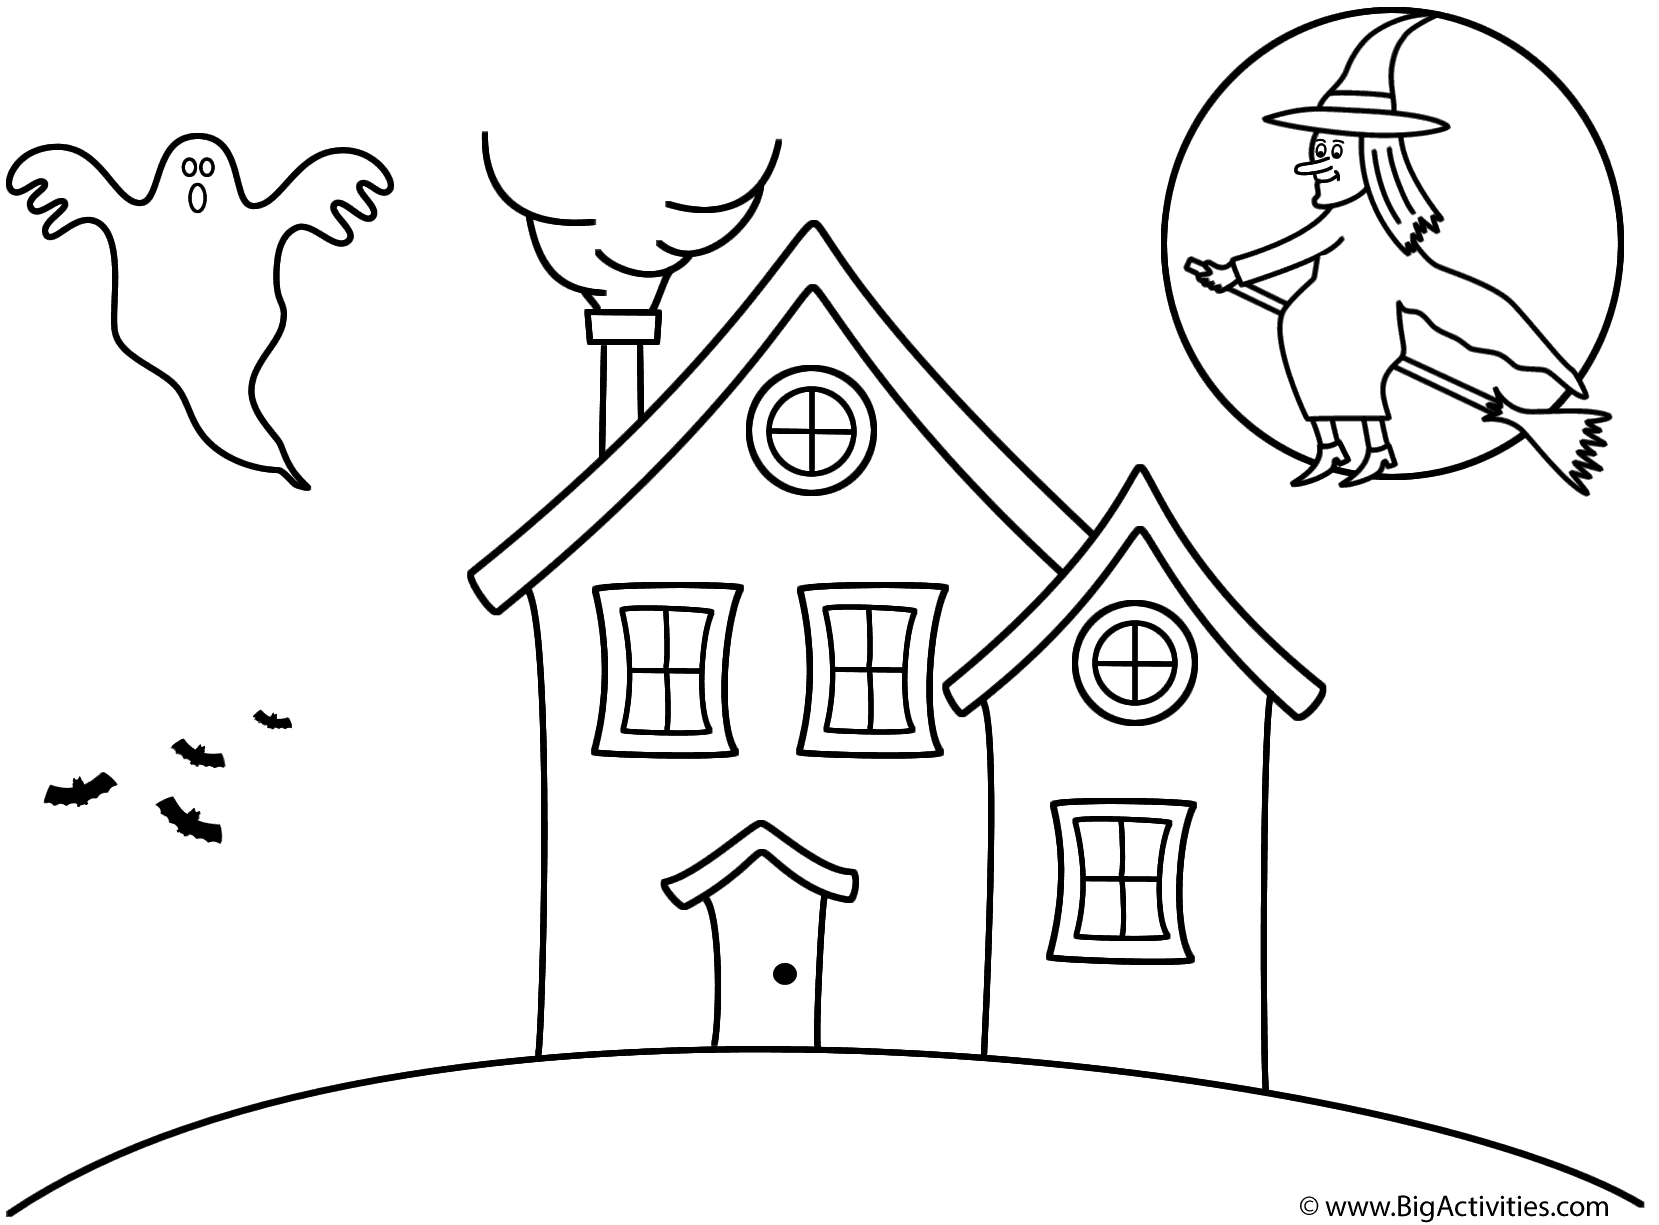 coloring pages of haunted houses halloween coloring pages haunted house part 9 of coloring haunted houses pages